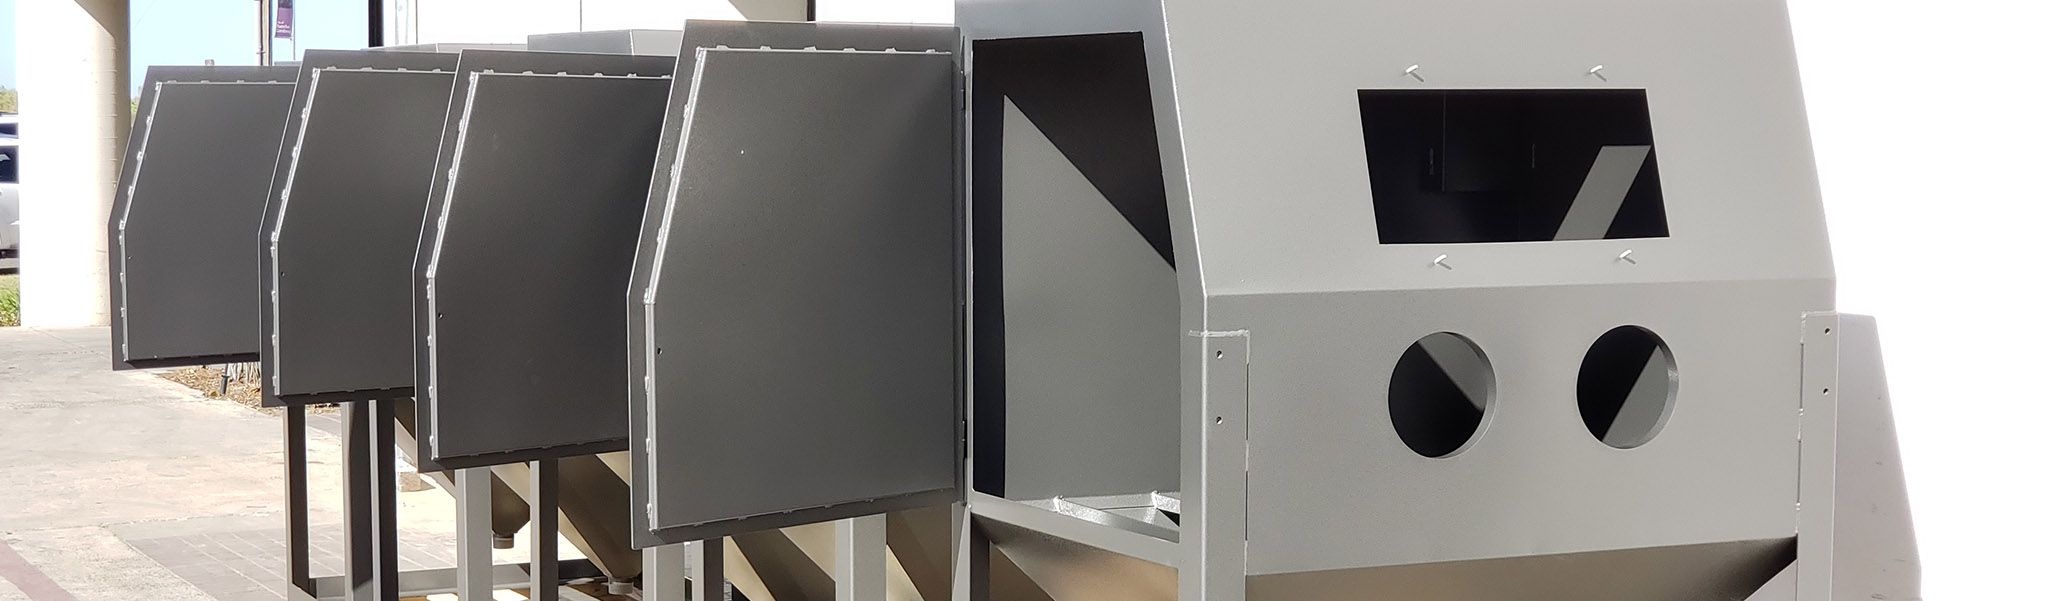 Industrial powder coated blast cabinets